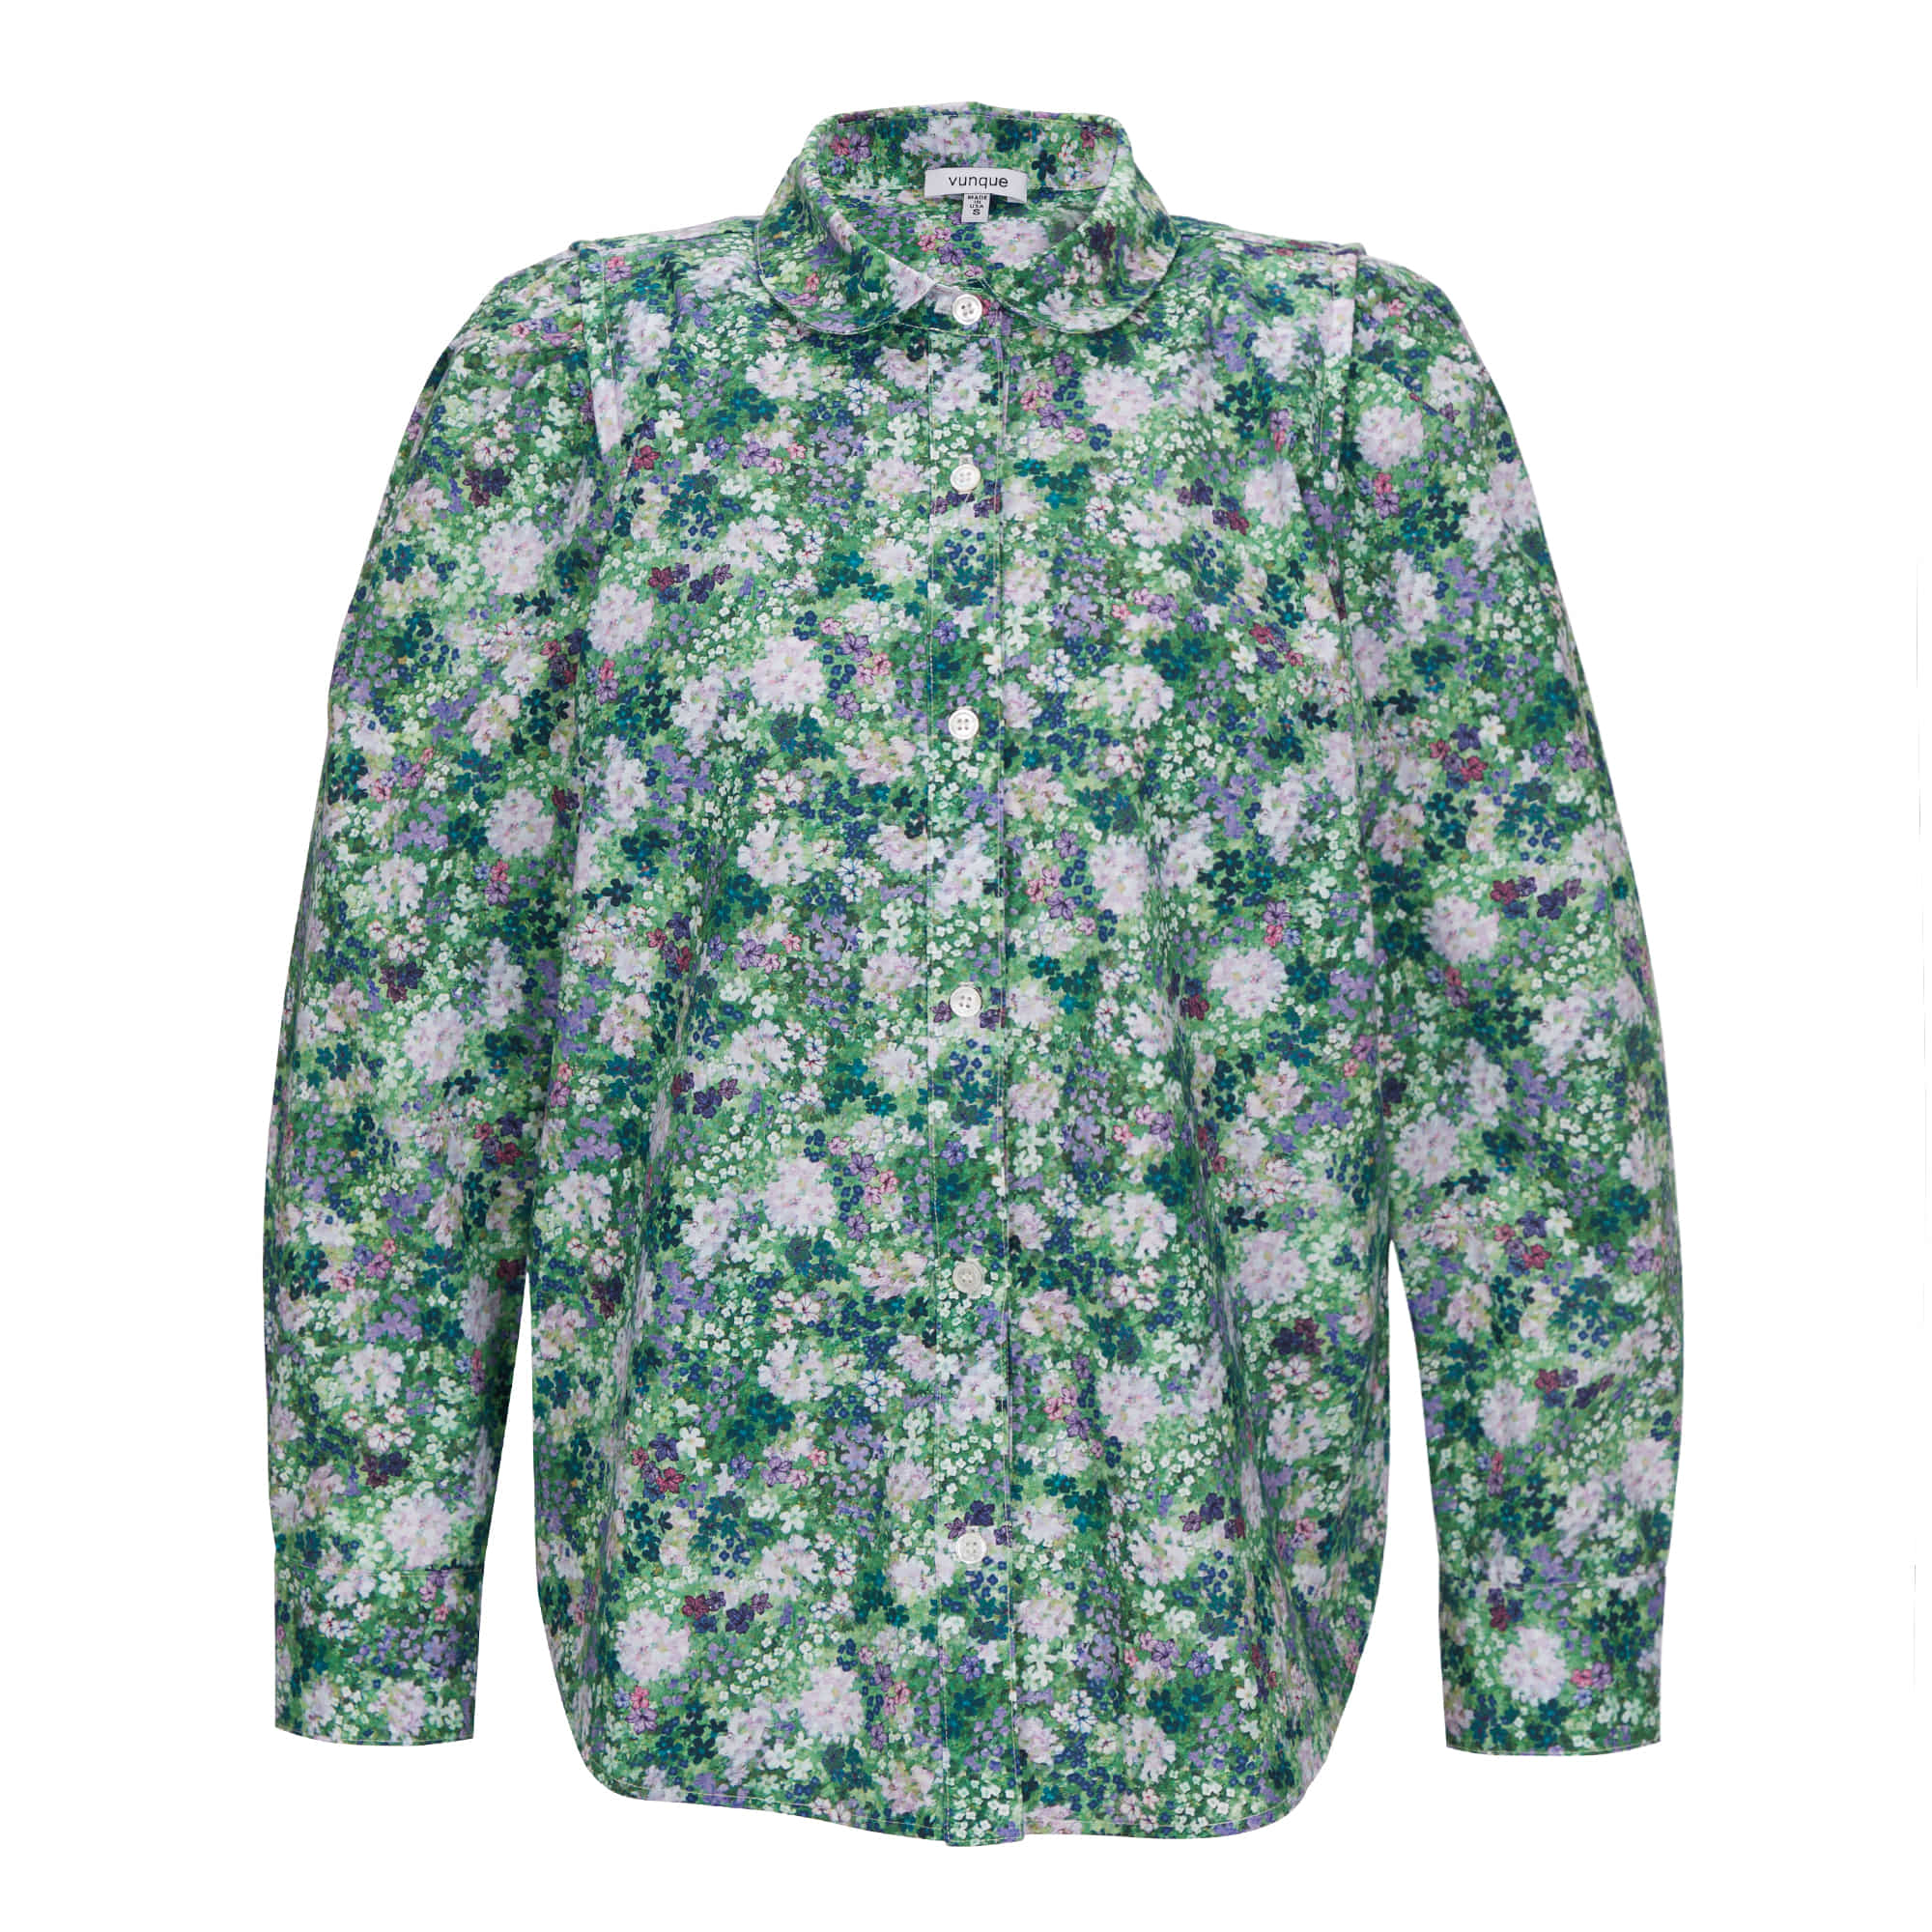 Humming double shoulder shirt (허밍 더블 숄더 셔츠) Floral